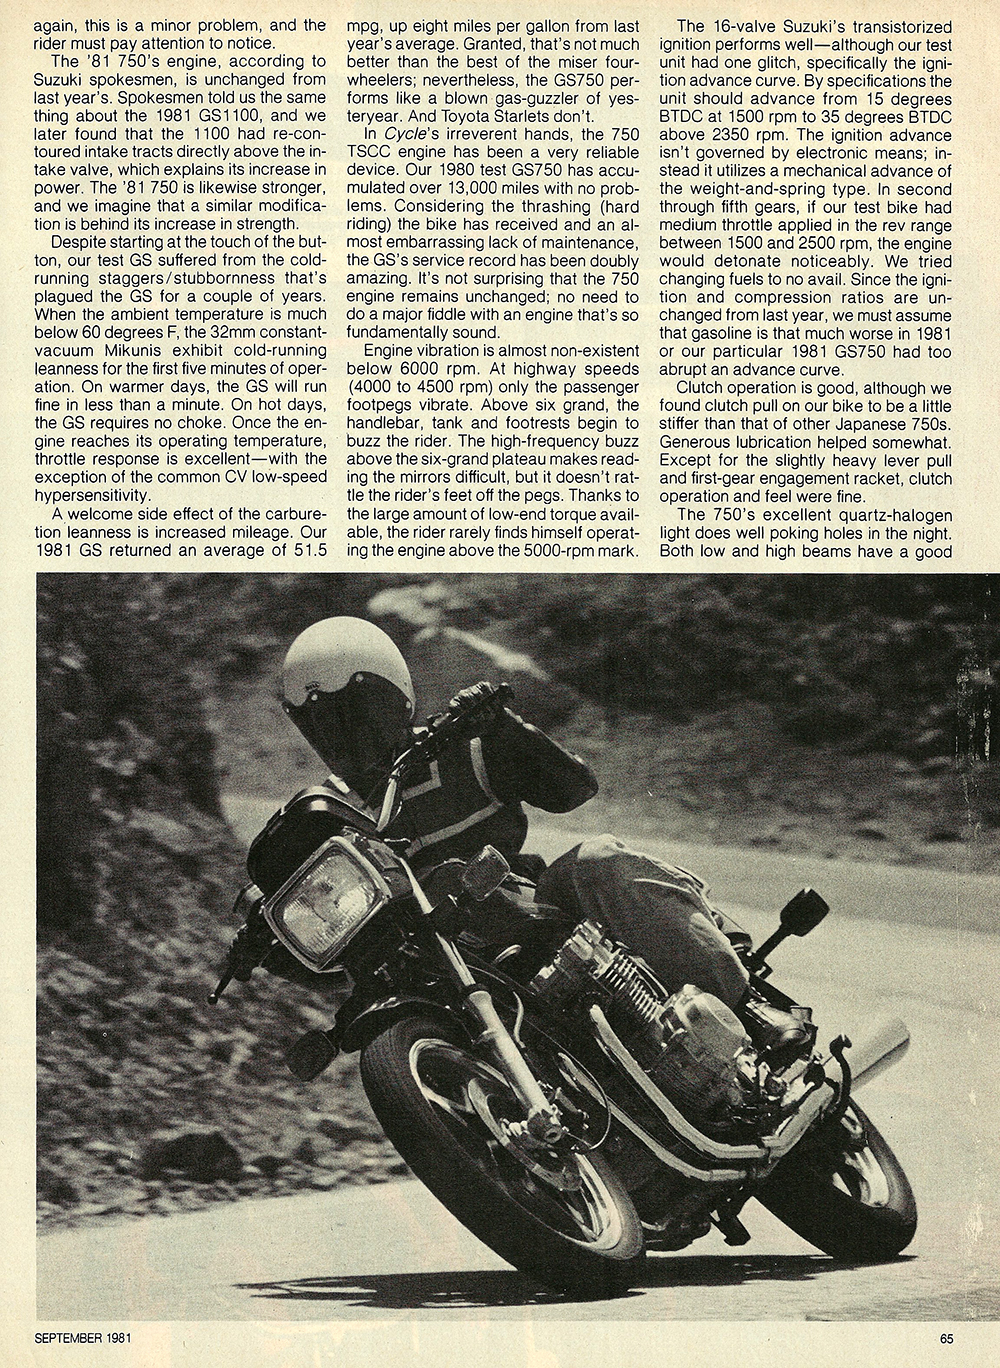 1981 Suzuki GS750 EX road test 04.jpg